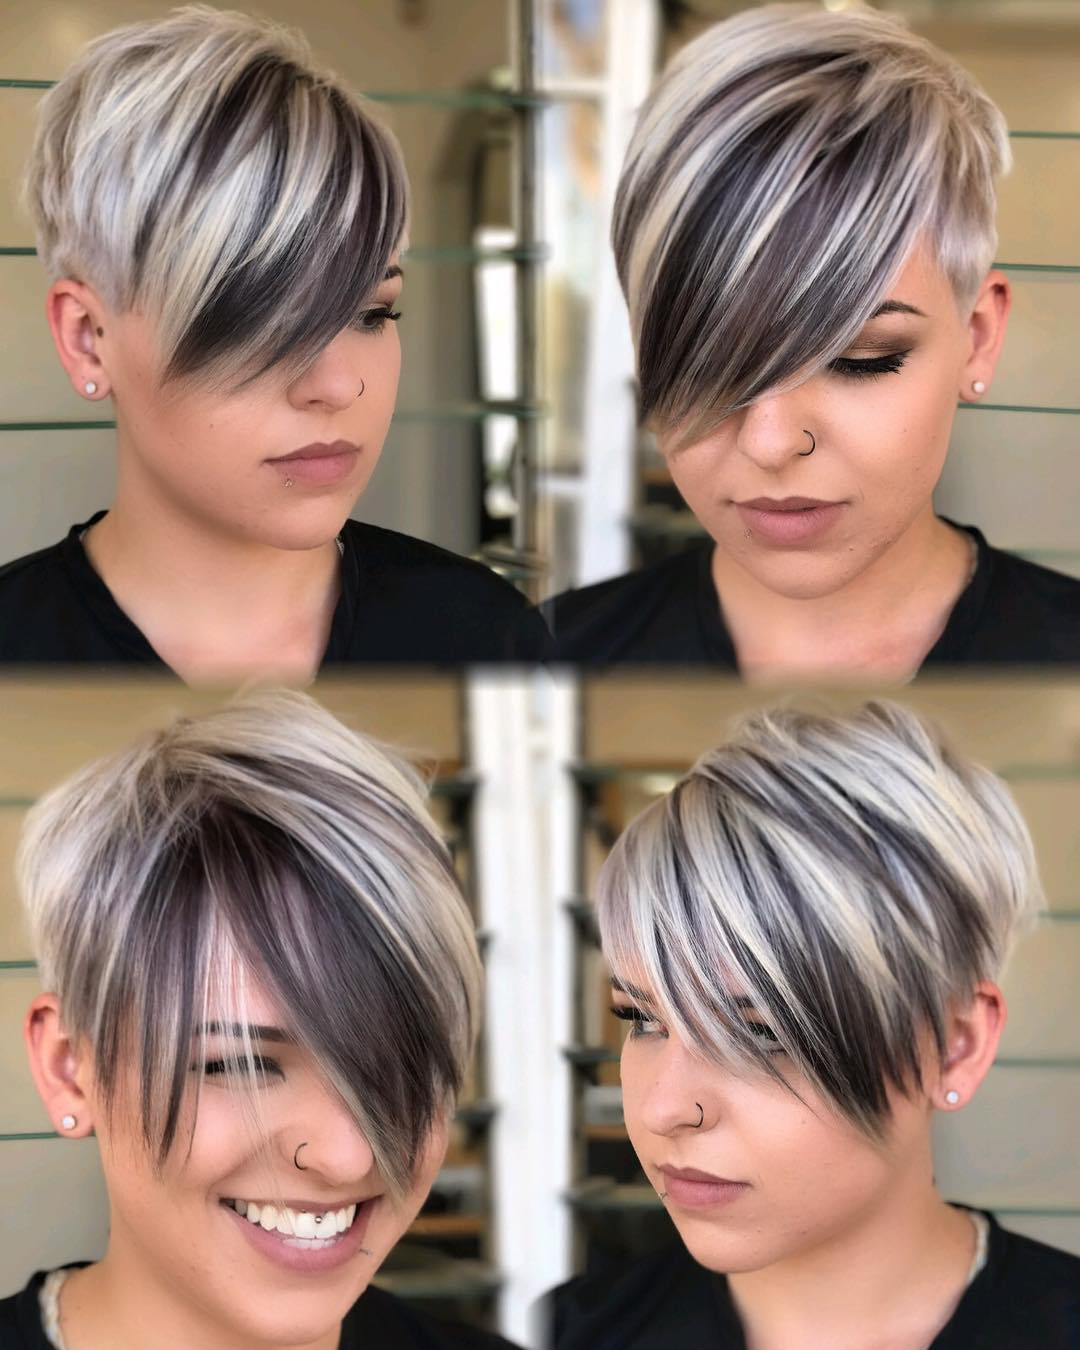 Short Choppy Hairstyles For Round Faces : short, choppy, hairstyles, round, faces, Short, Hairstyles, Round, Faces, Slimming, Effect, Adviser